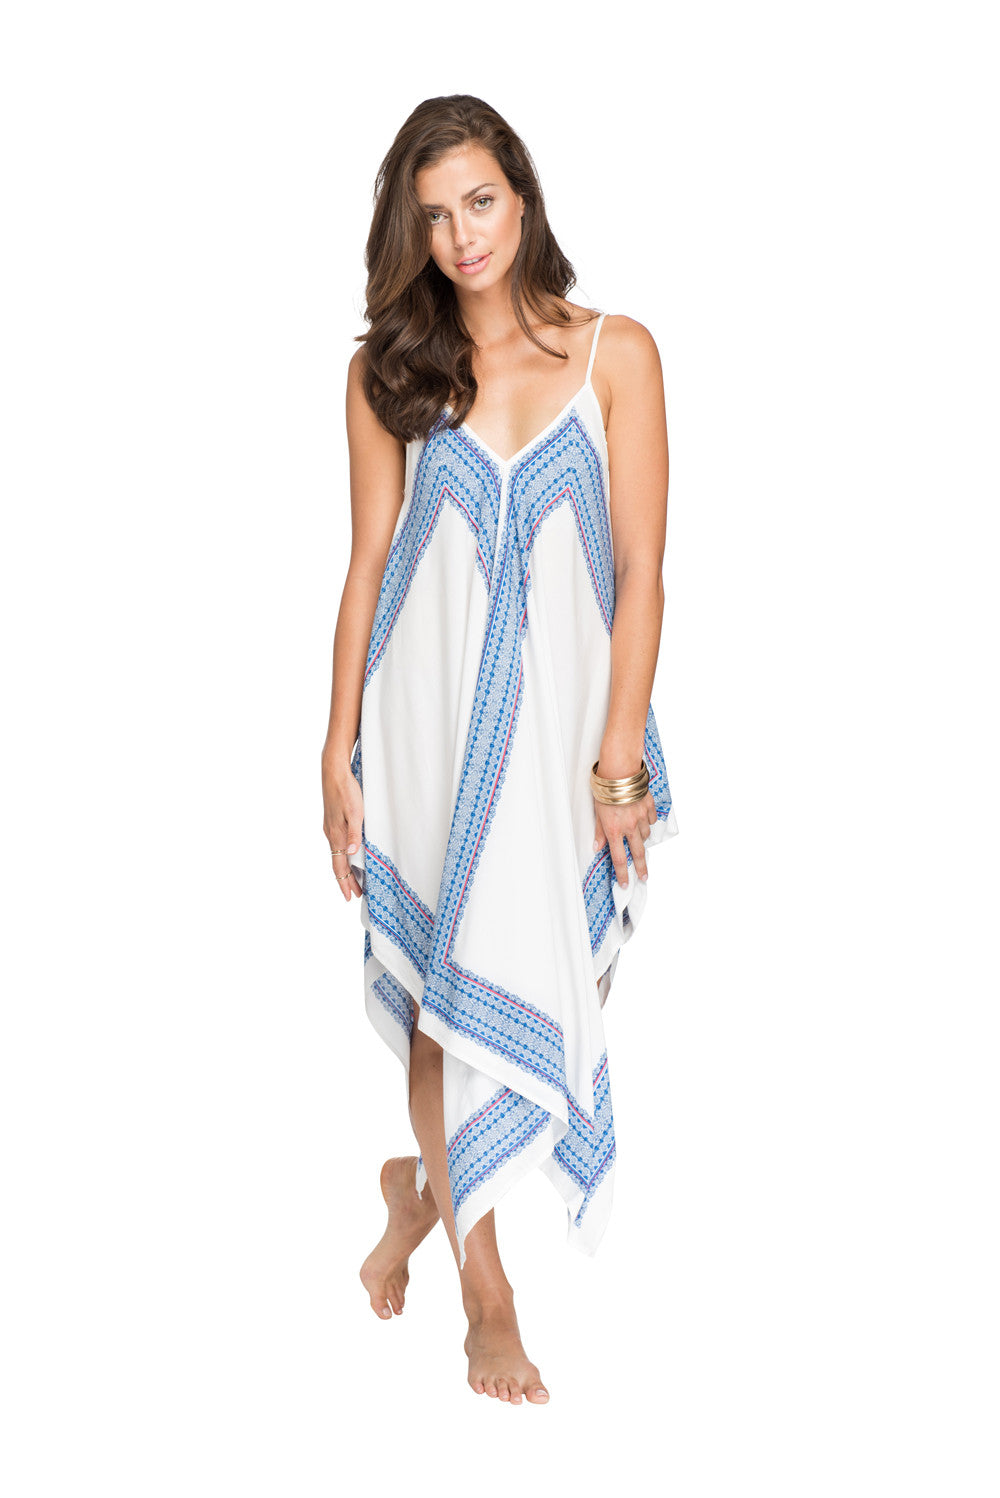 Hawaiian Tropic, Sun Dress, Beach Dress